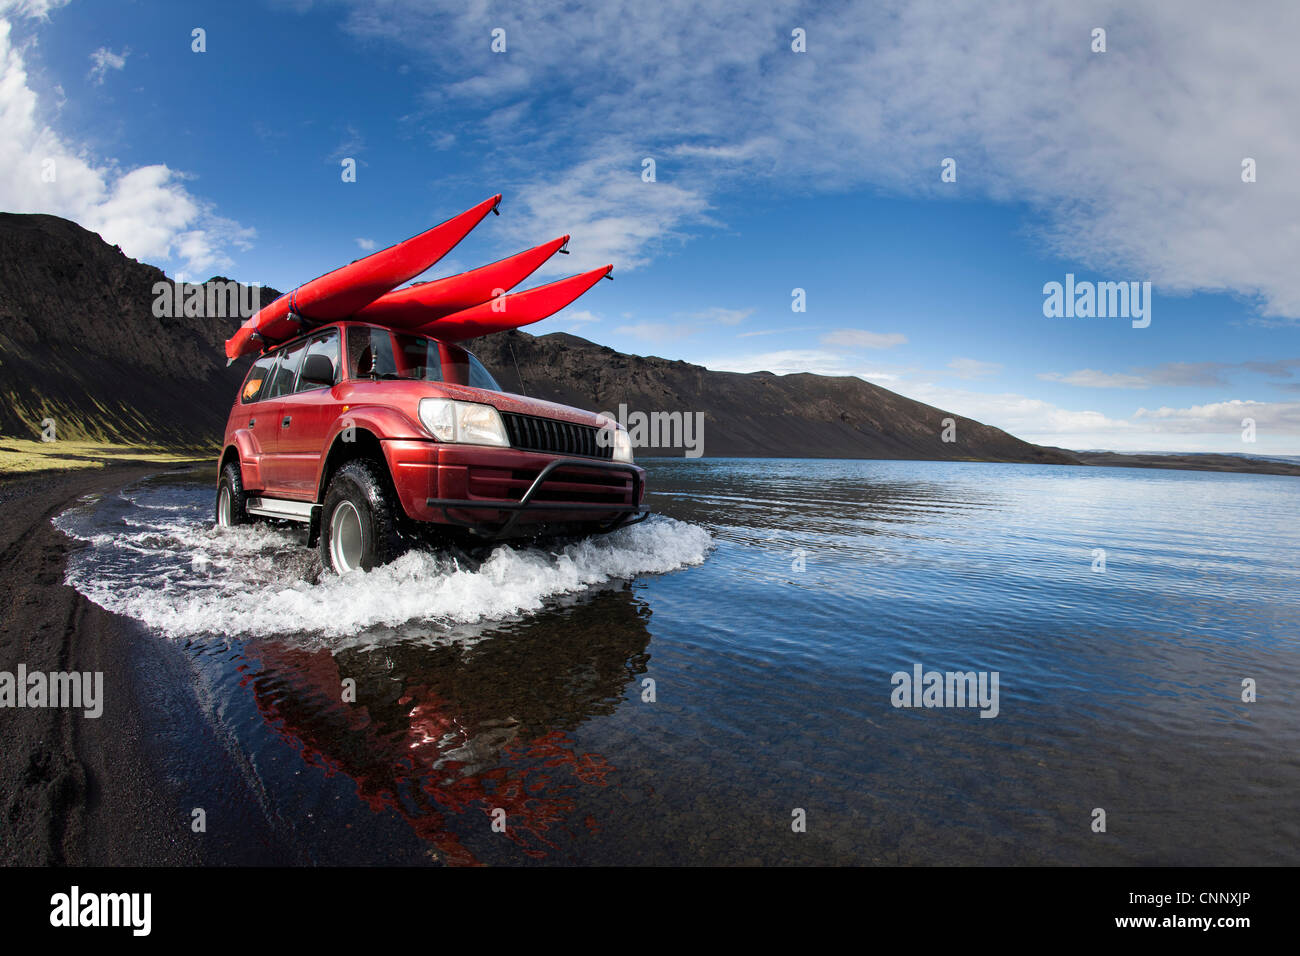 Jeep driving in shallow lake - Stock Image